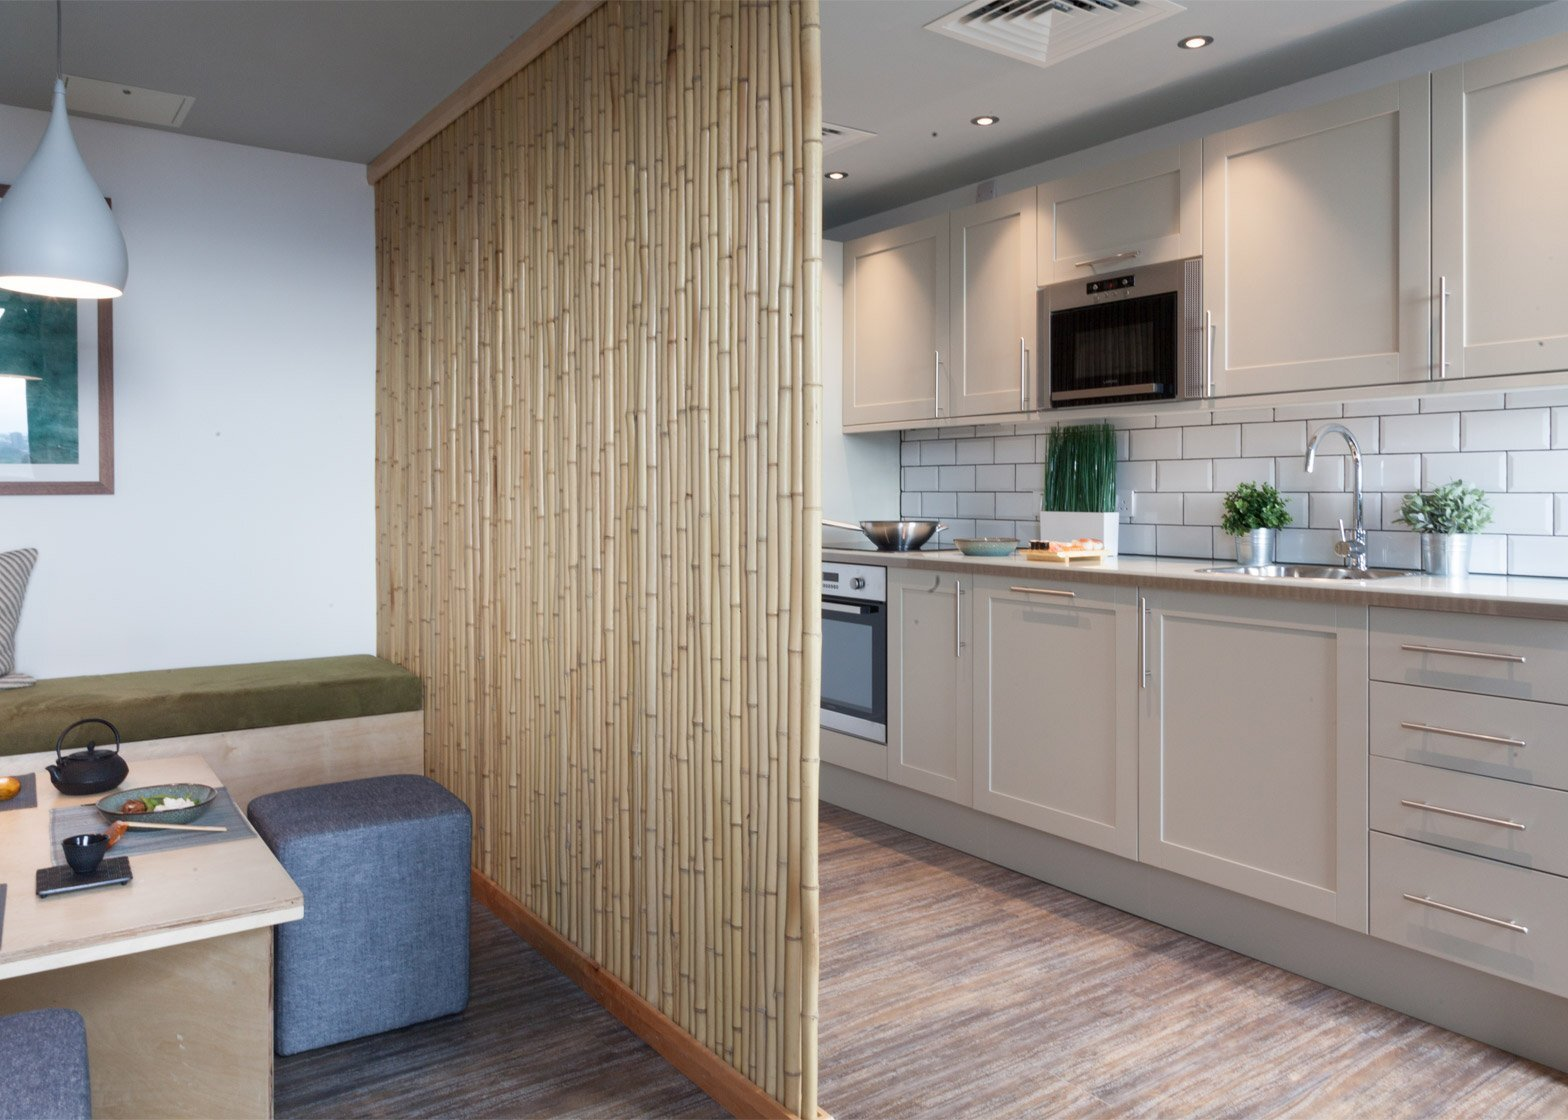 Shared Housing - The Collective Old Oak - London - Kitchen 1 - Humble Homes